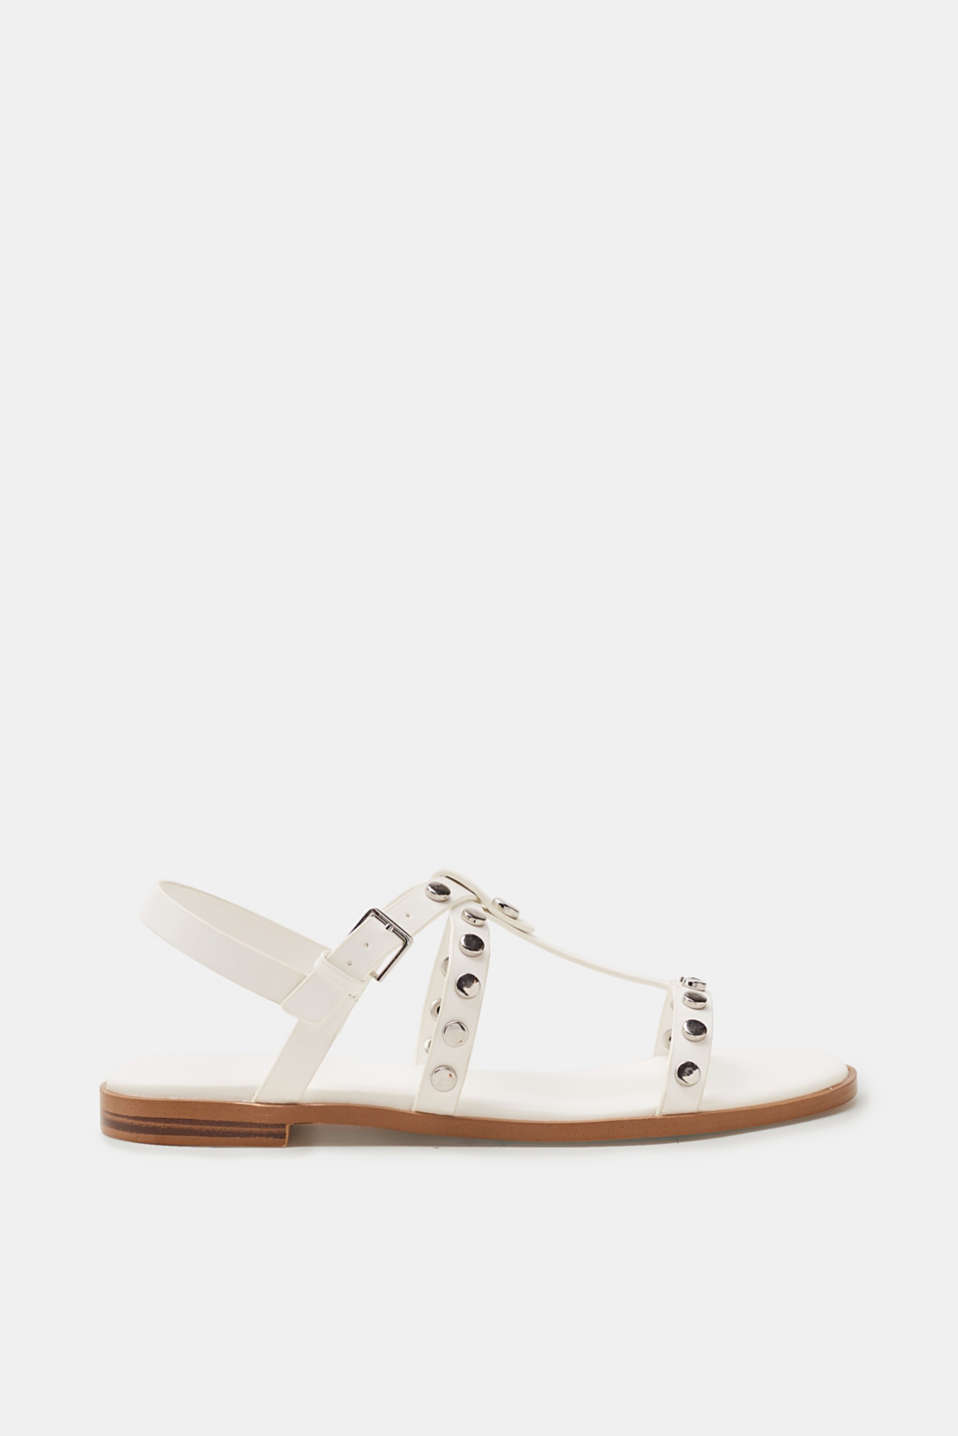 Esprit - Flat sandals in faux leather with a decorative studs